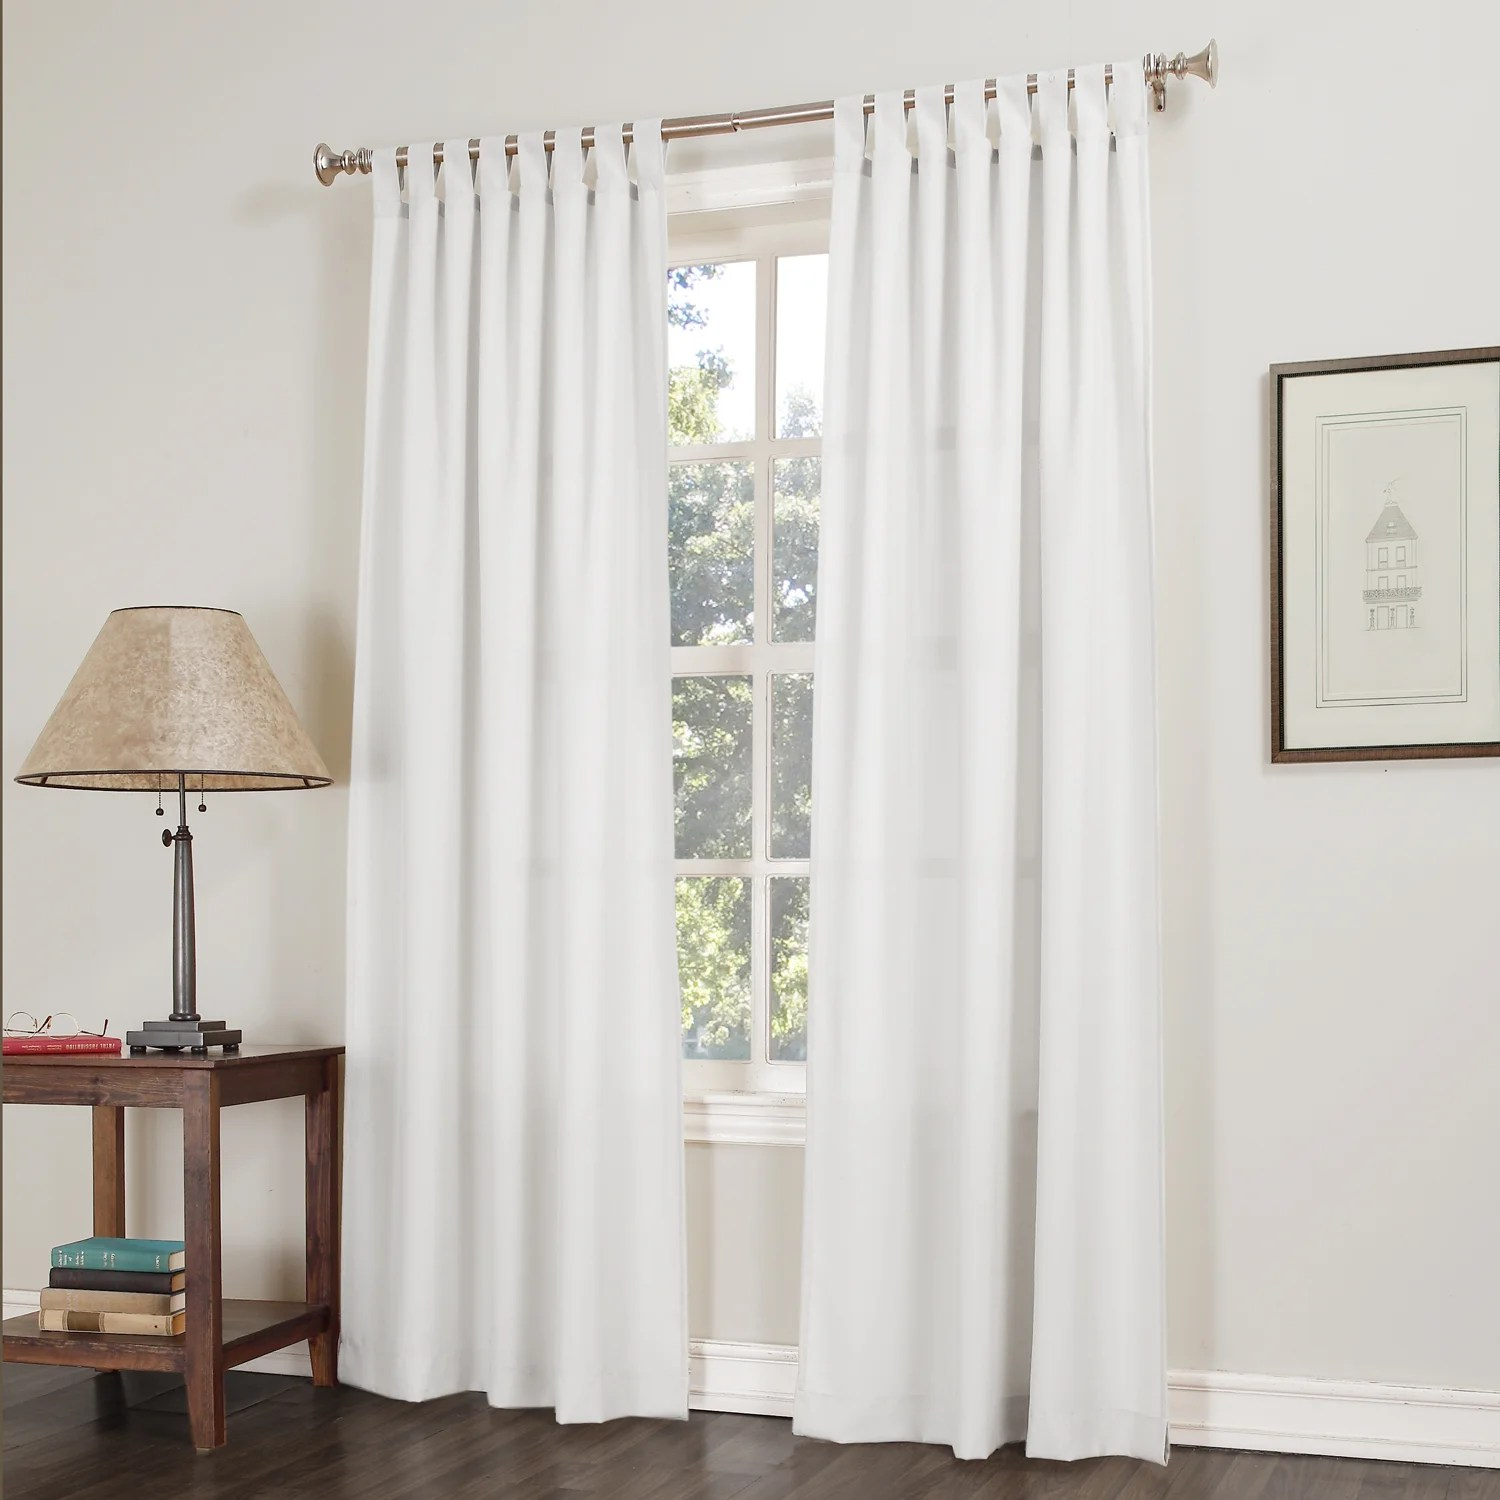 How To Buy Curtain Panels